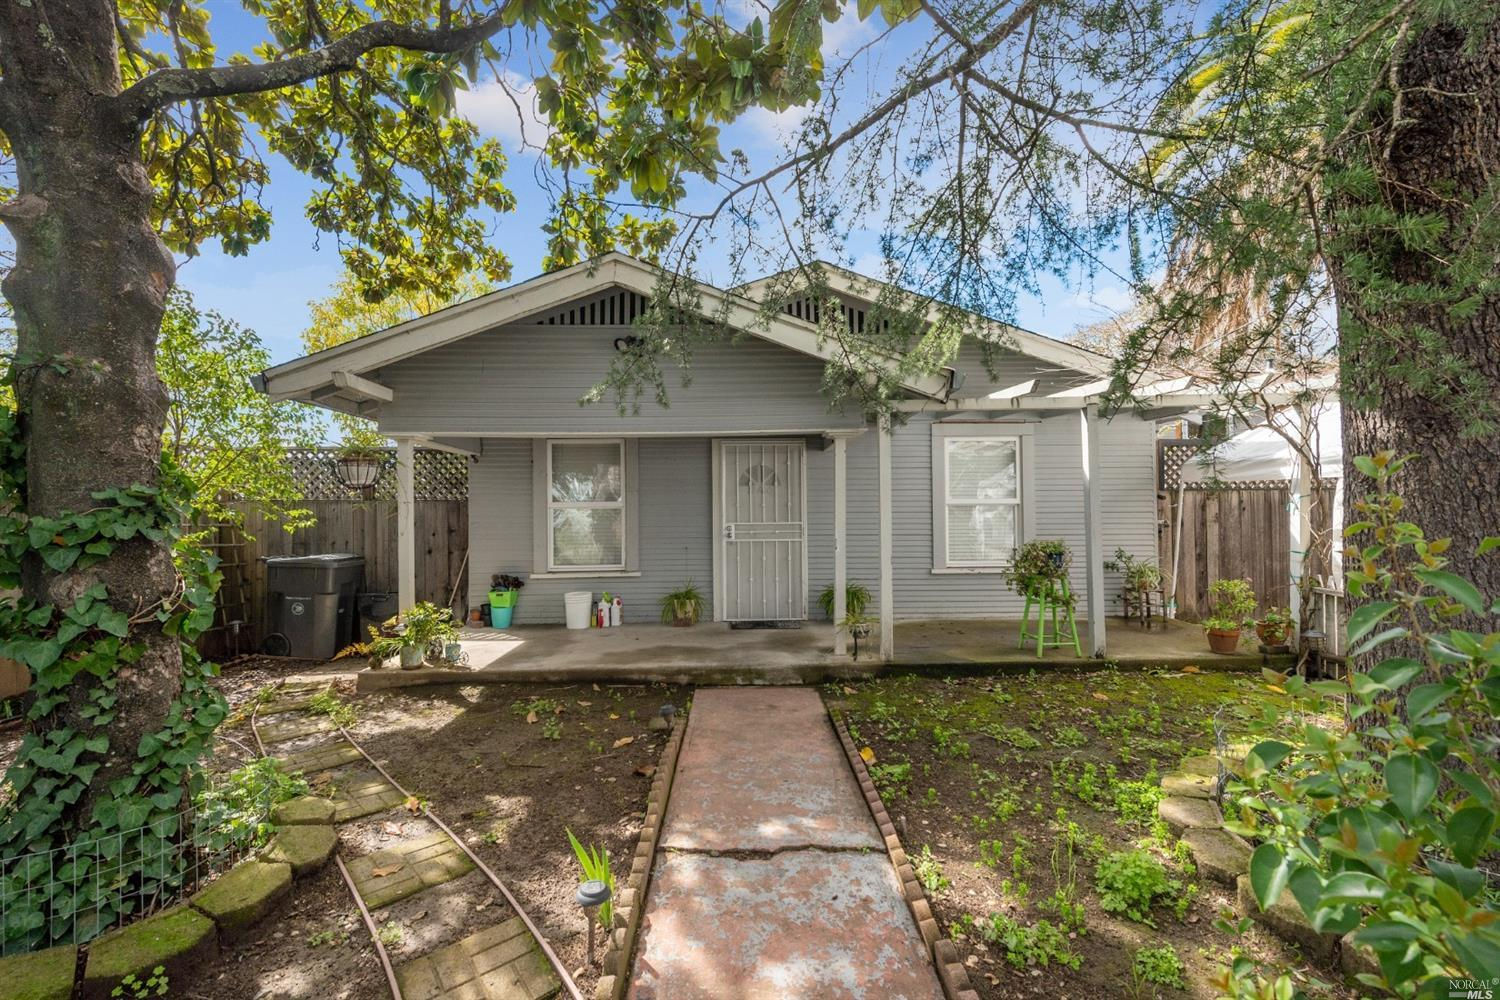 Opportunity knocks!  Sweet 2Bd/2Ba vintage home in Sonoma. Detached garage and a private backyard.  Close proximity to restaurants, shops, parks and an open air market.